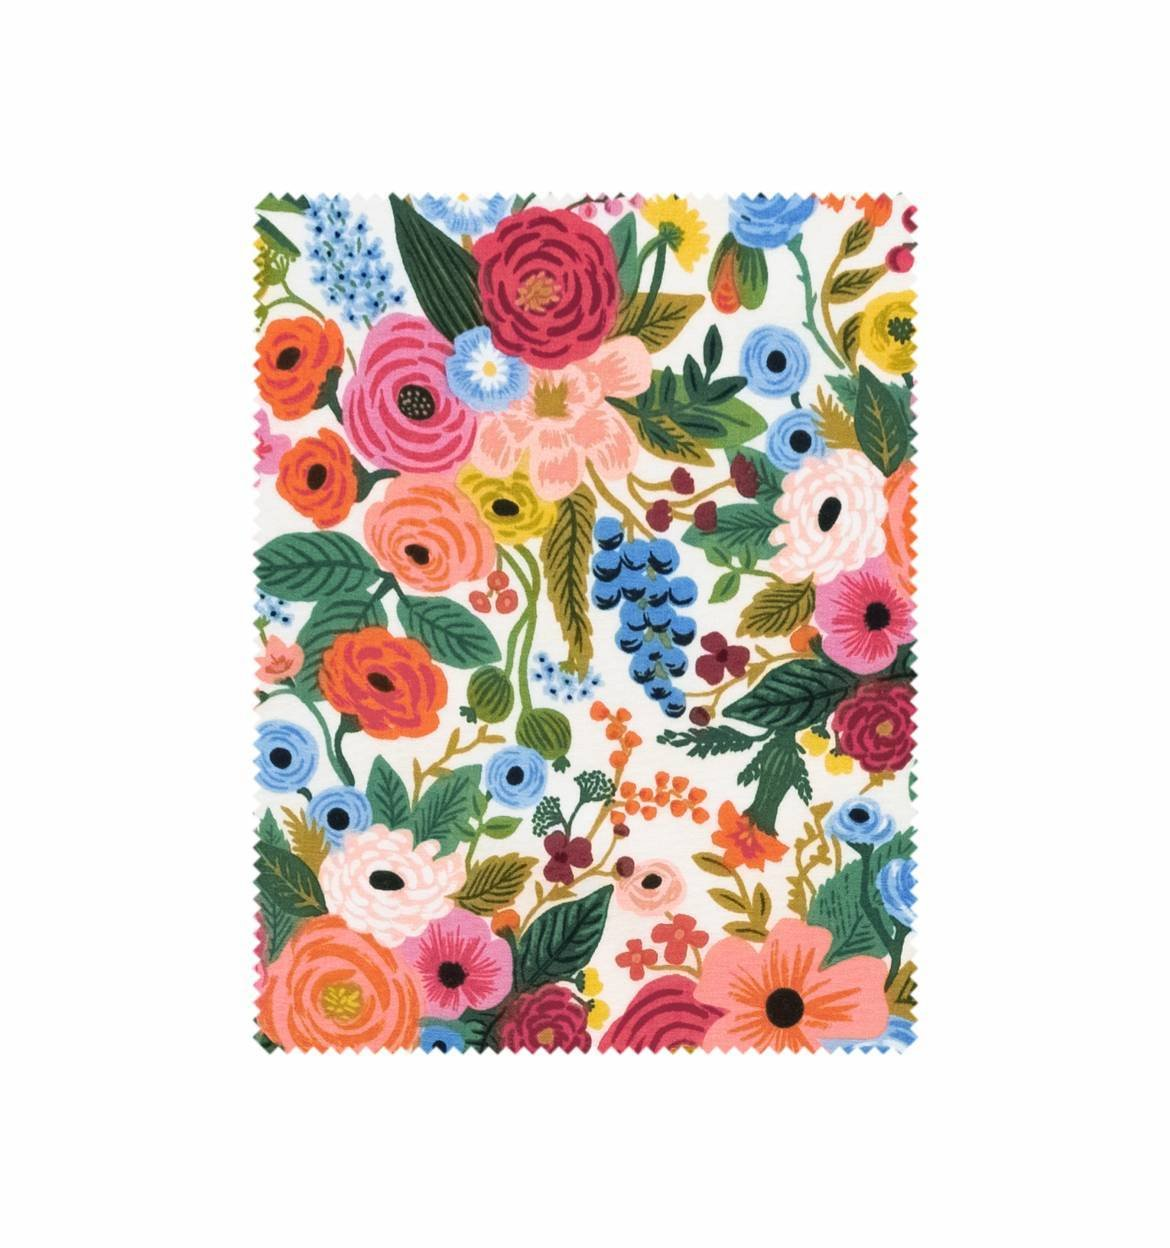 Cotton + Steel Wildwood by Rifle Paper Co - Cream Canvas Fabric